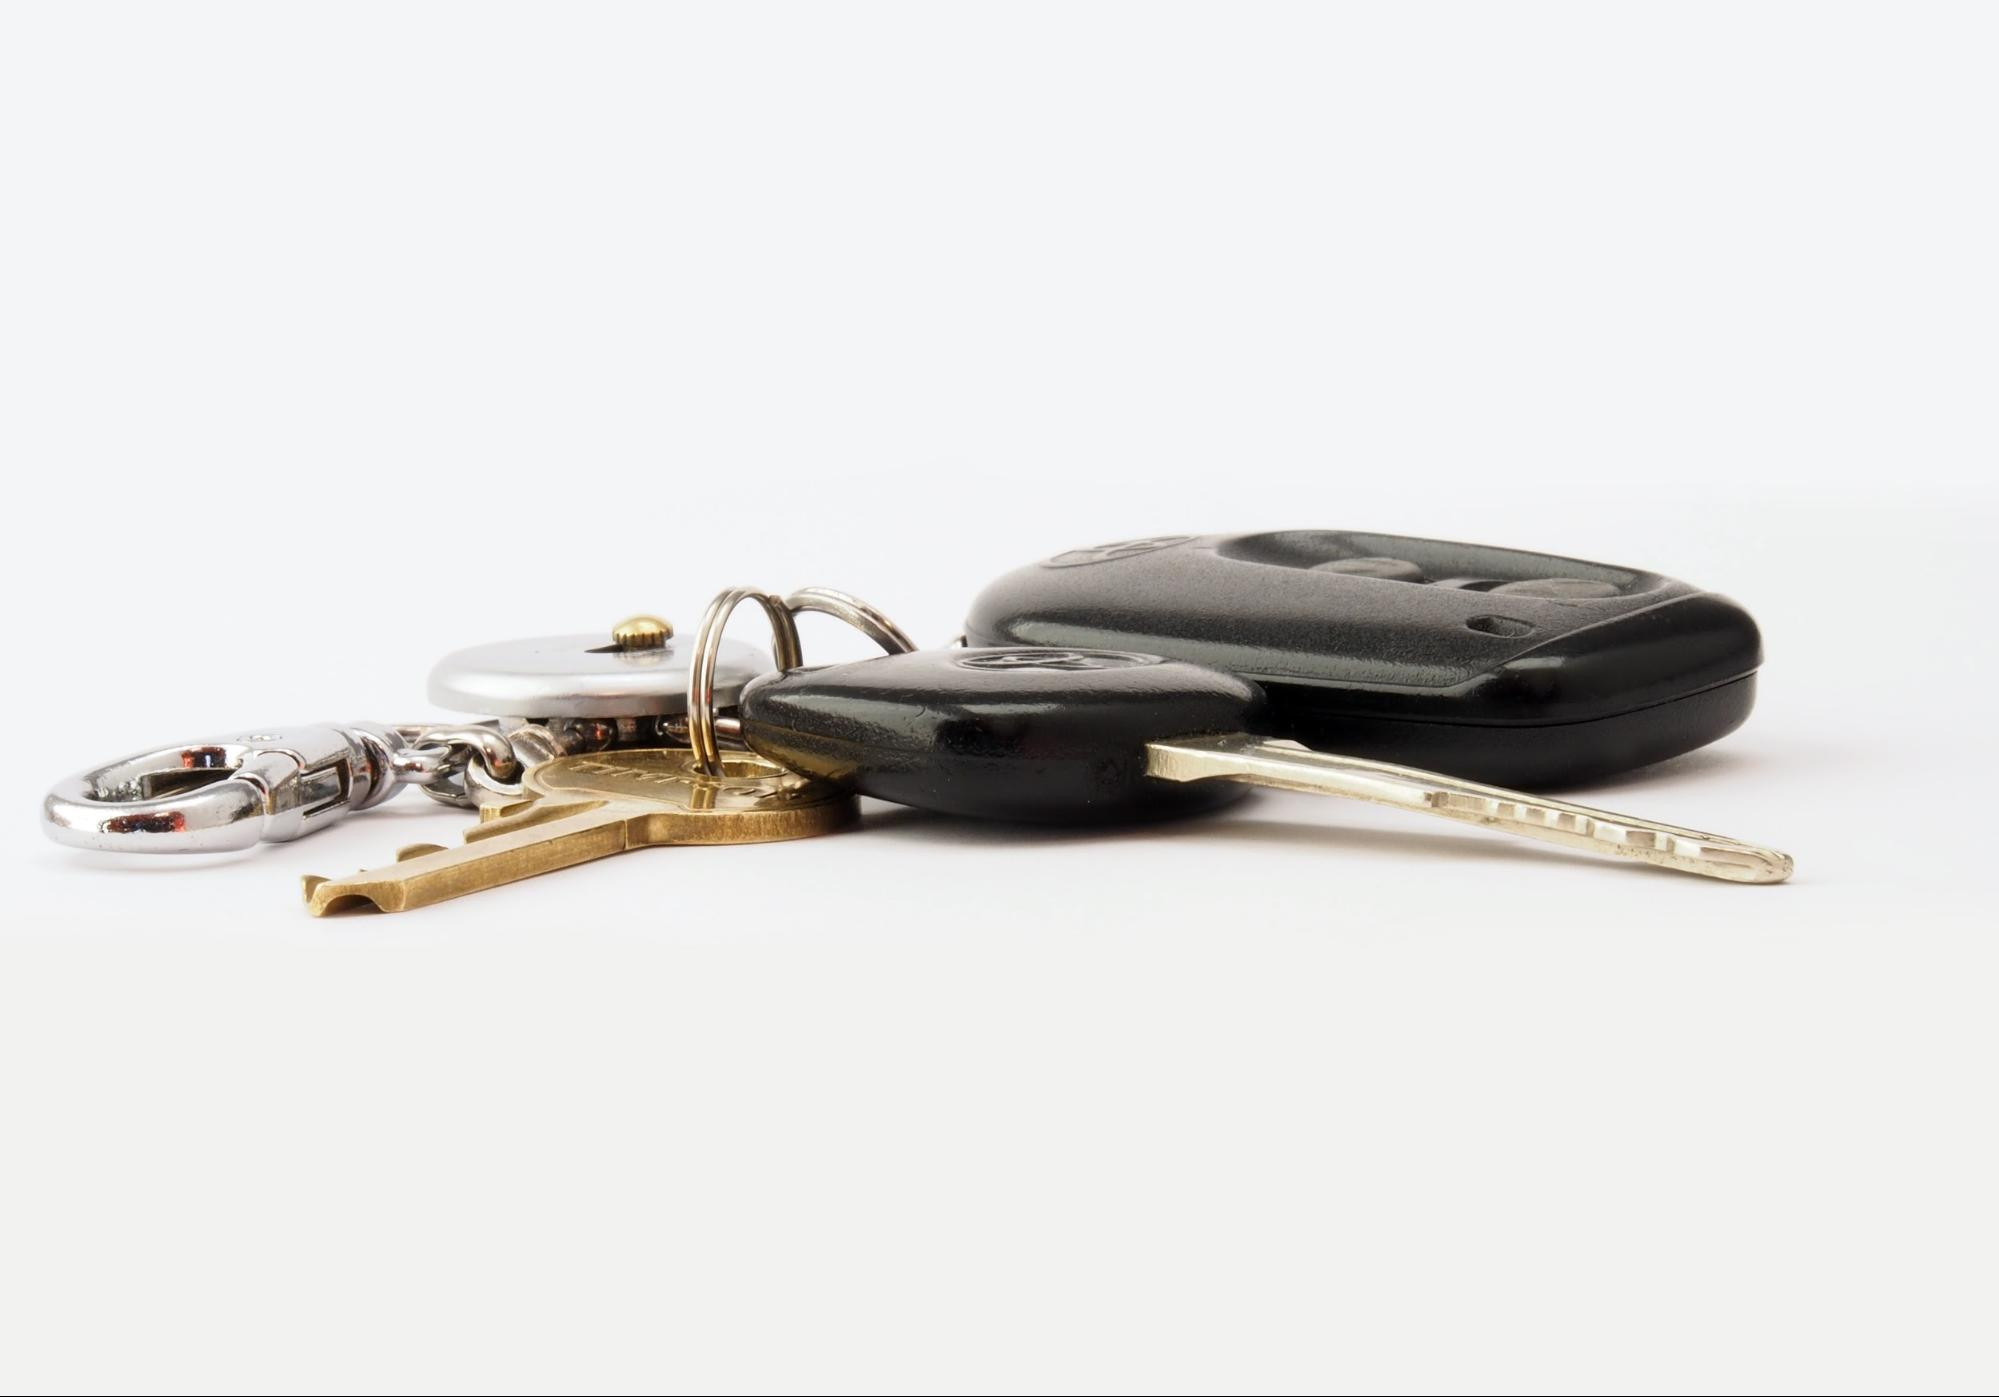 Just because you get the keys to a car doesn't mean your troubles are over.